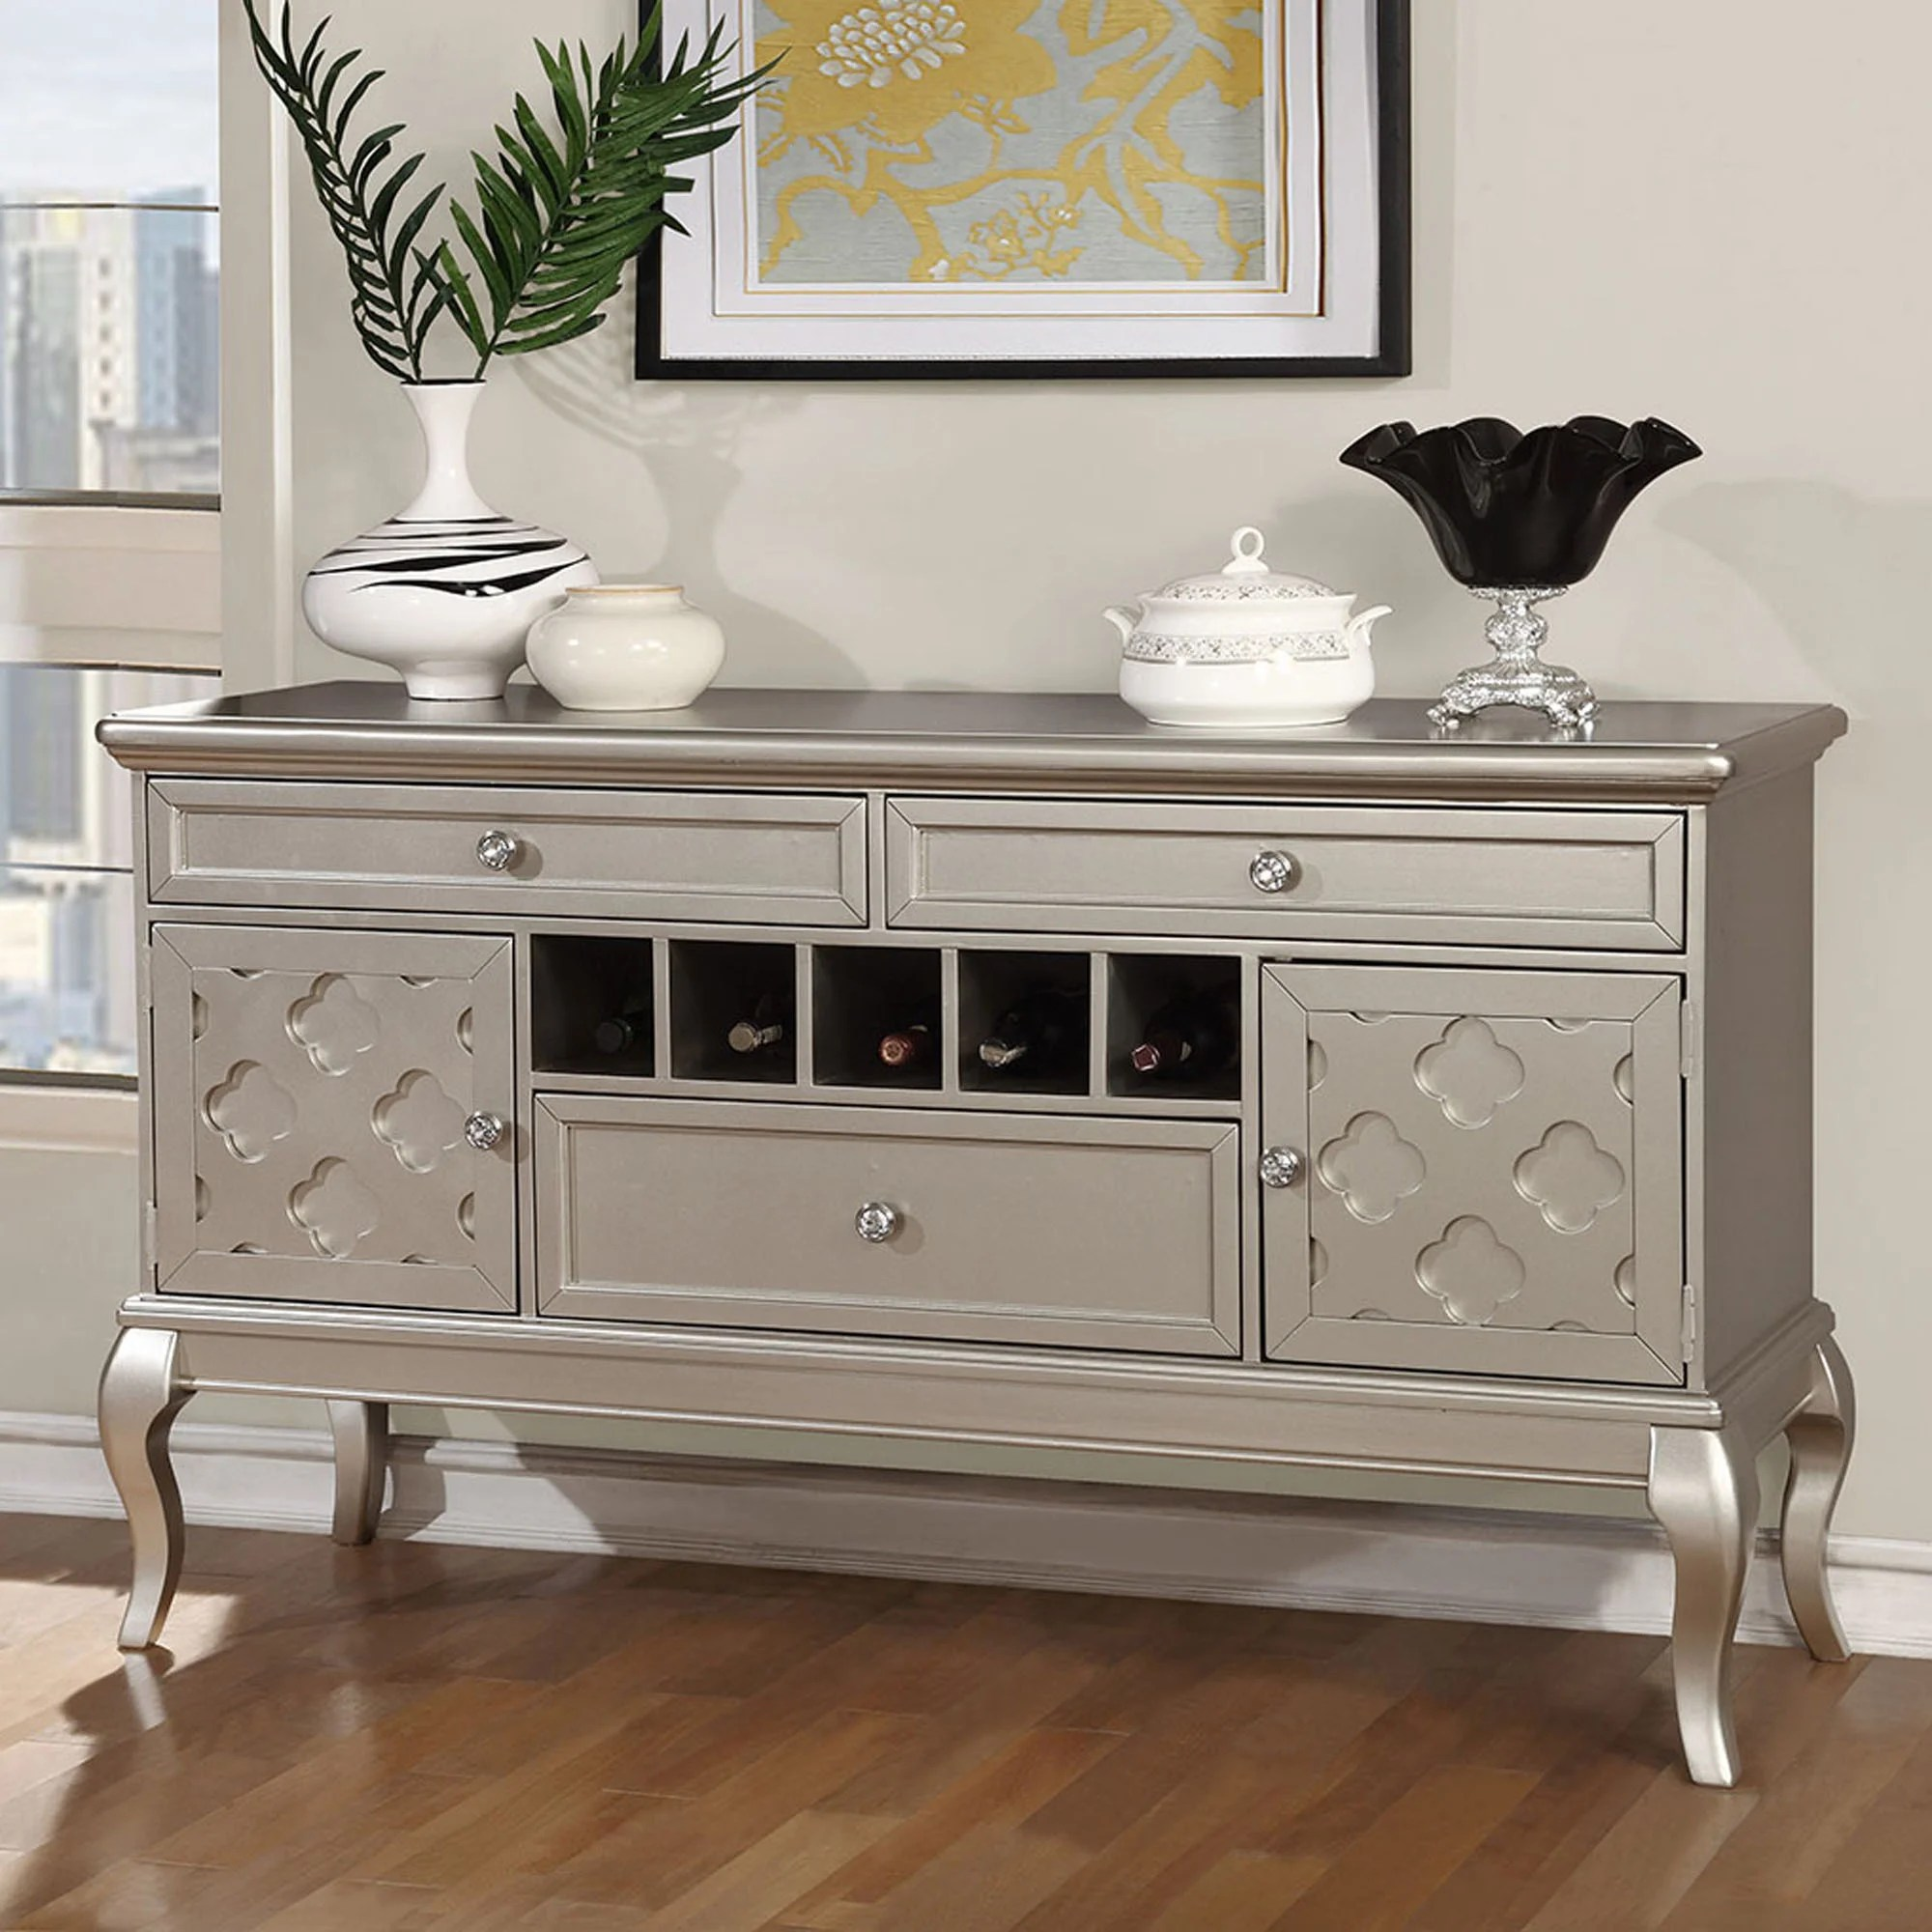 Designer Sideboards Buy Glam Buffets Sideboards China Cabinets Online At Overstock